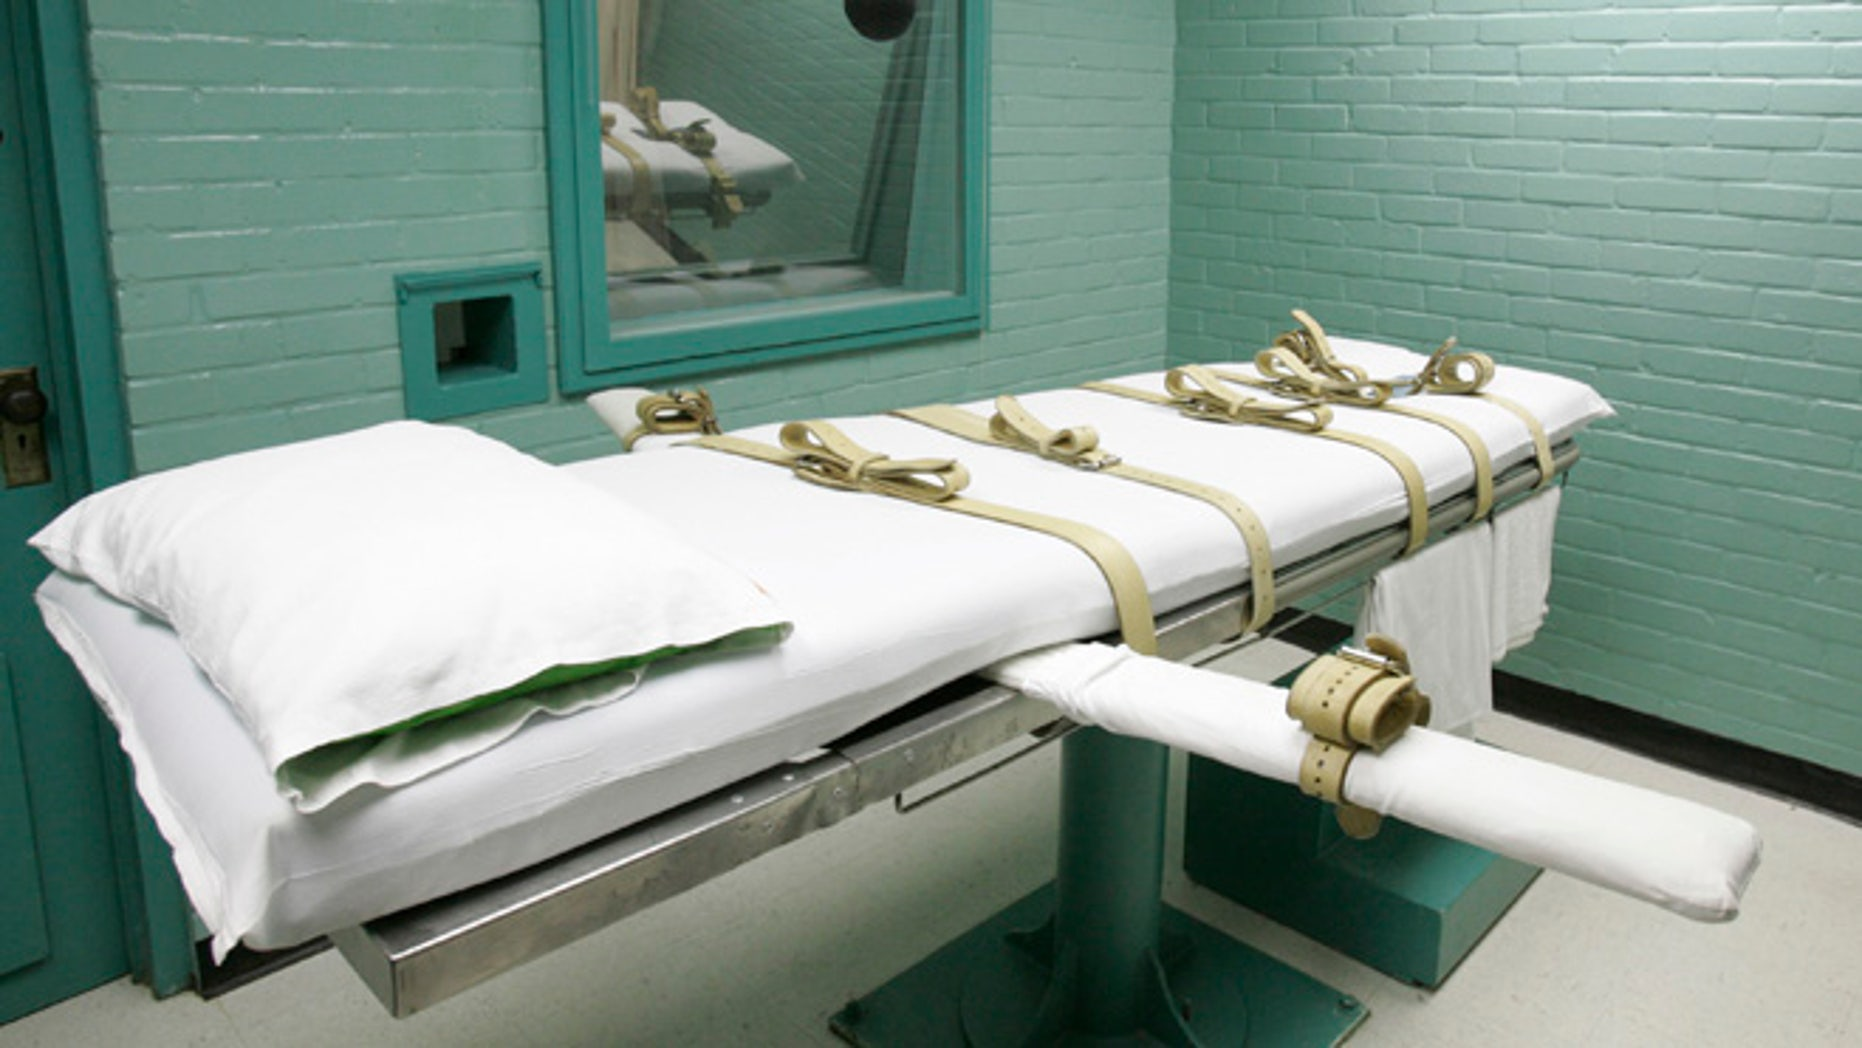 FILE: 2008: A gurney on which Texas' condemned are strapped down to receive a lethal dose of drugs. in Huntsville, Texas.